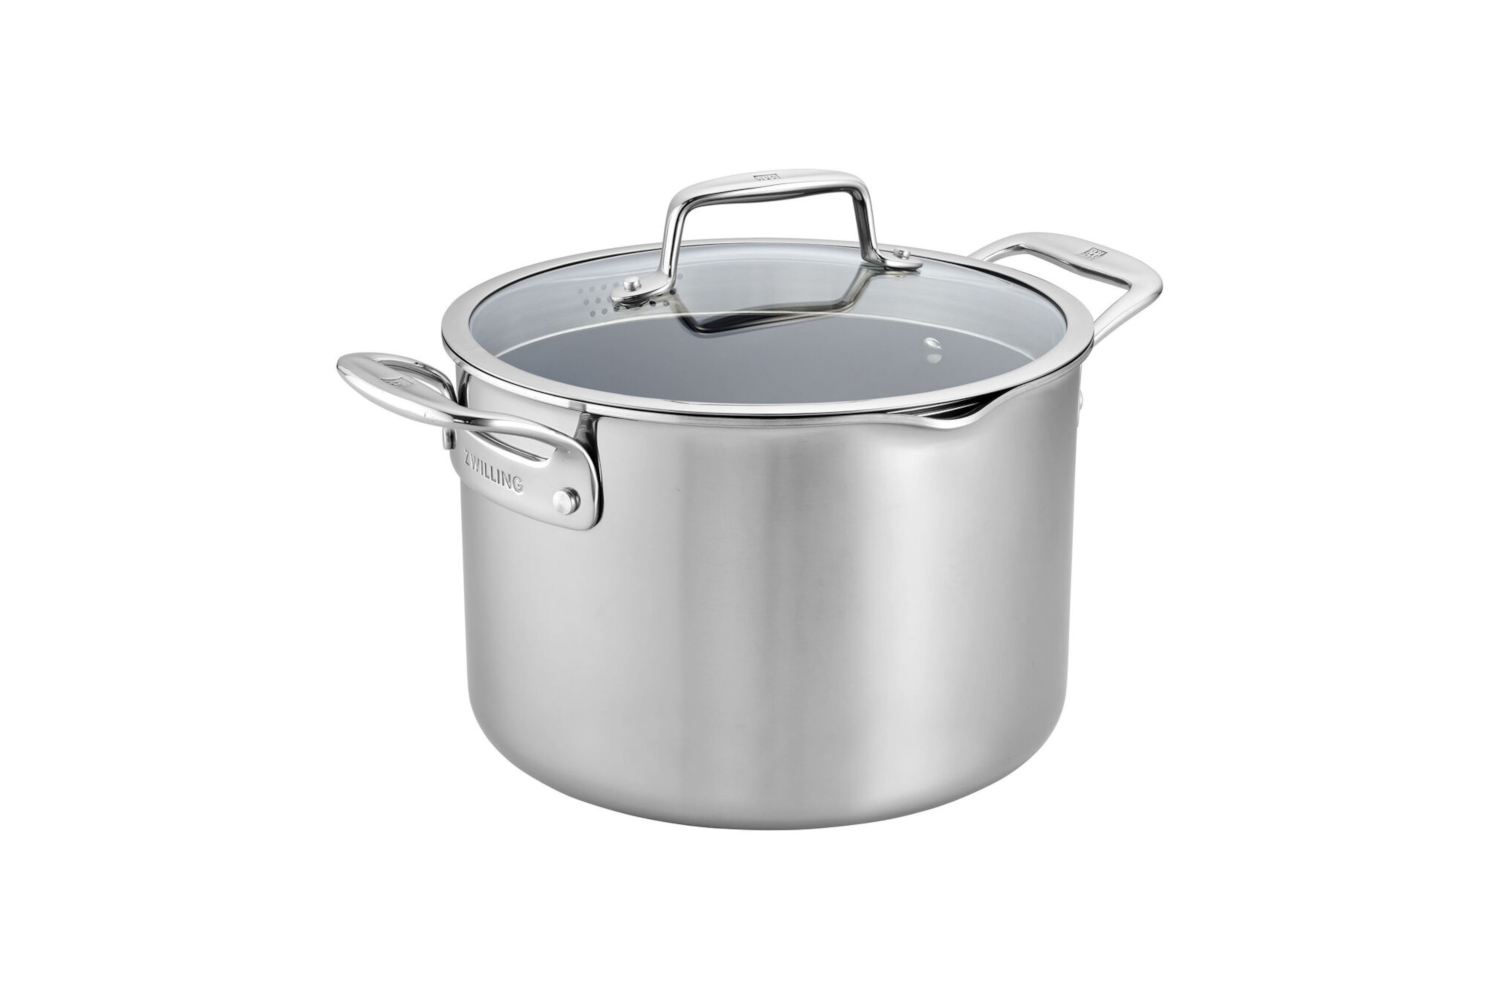 Zwilling CFX Stainless Steel 8 qt. Ceramic Nonstick Stock Pot